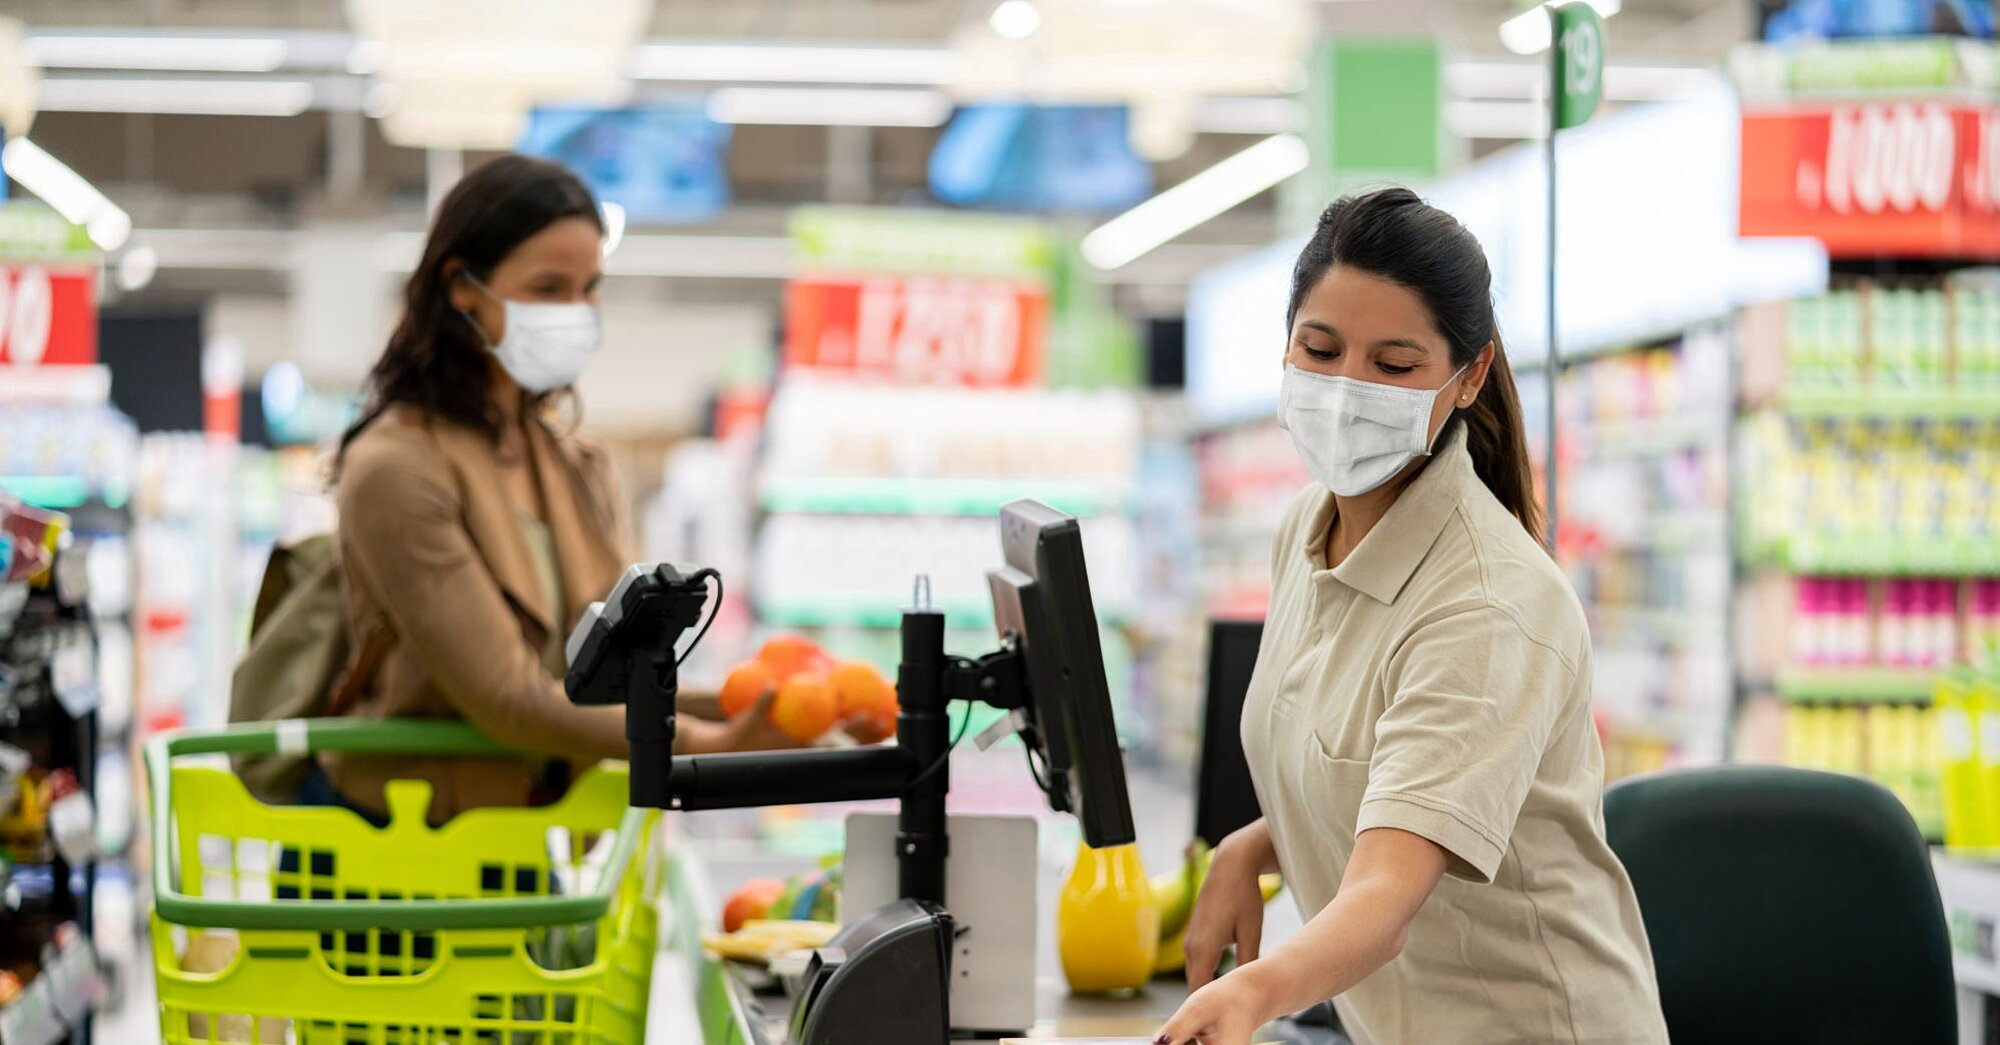 Shoppers Are More Scared of Increasing Food Prices Than the Coronavirus, Survey Shows